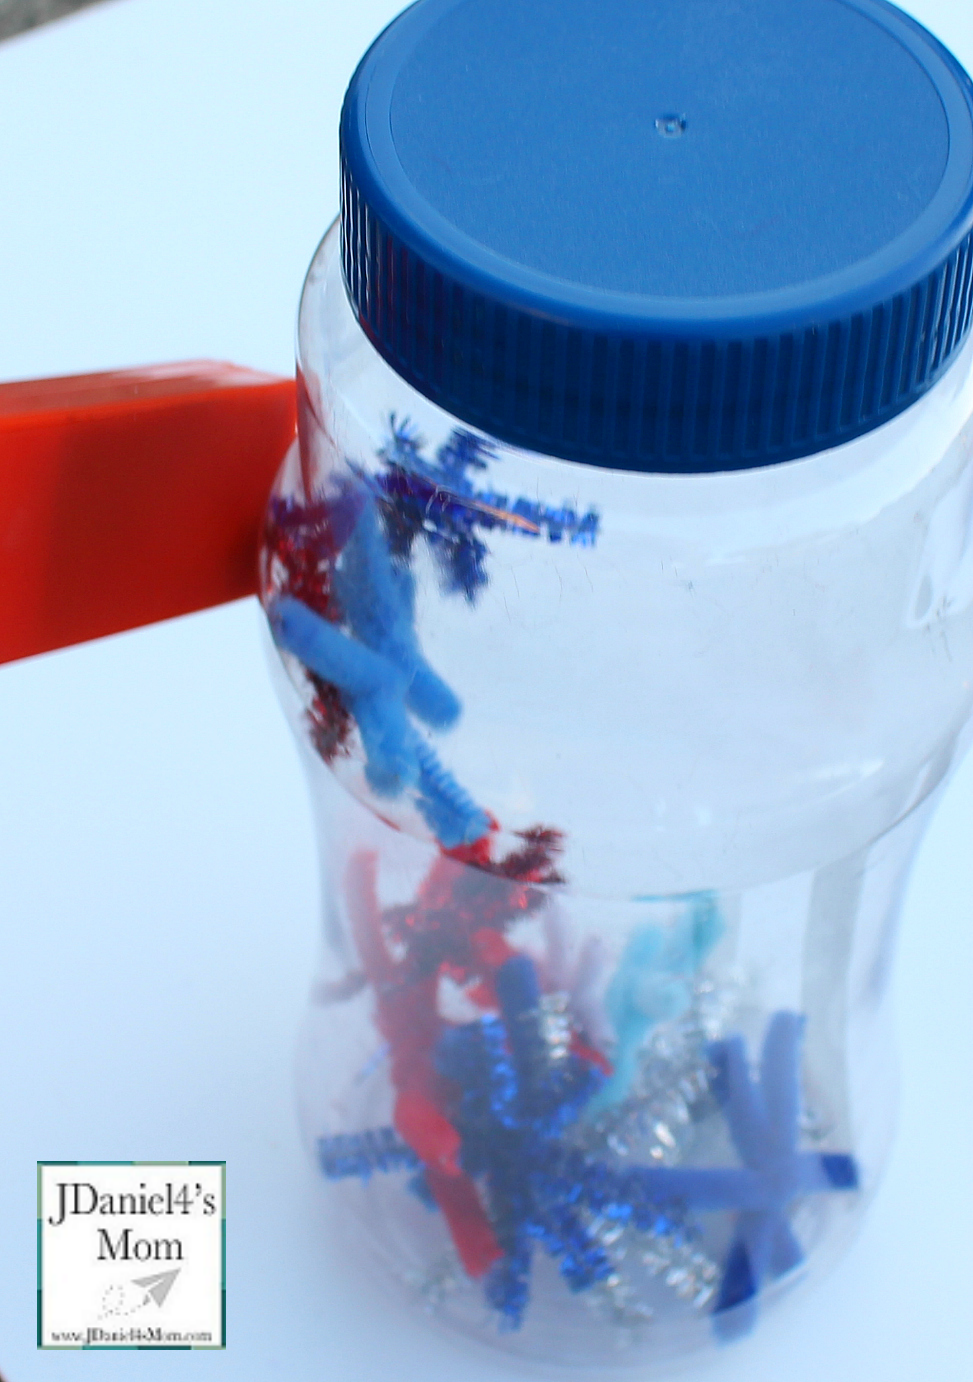 Magnetic Games for Kids - Fireworks in a Jar with Lots of Stars Lifting Off the Bottom